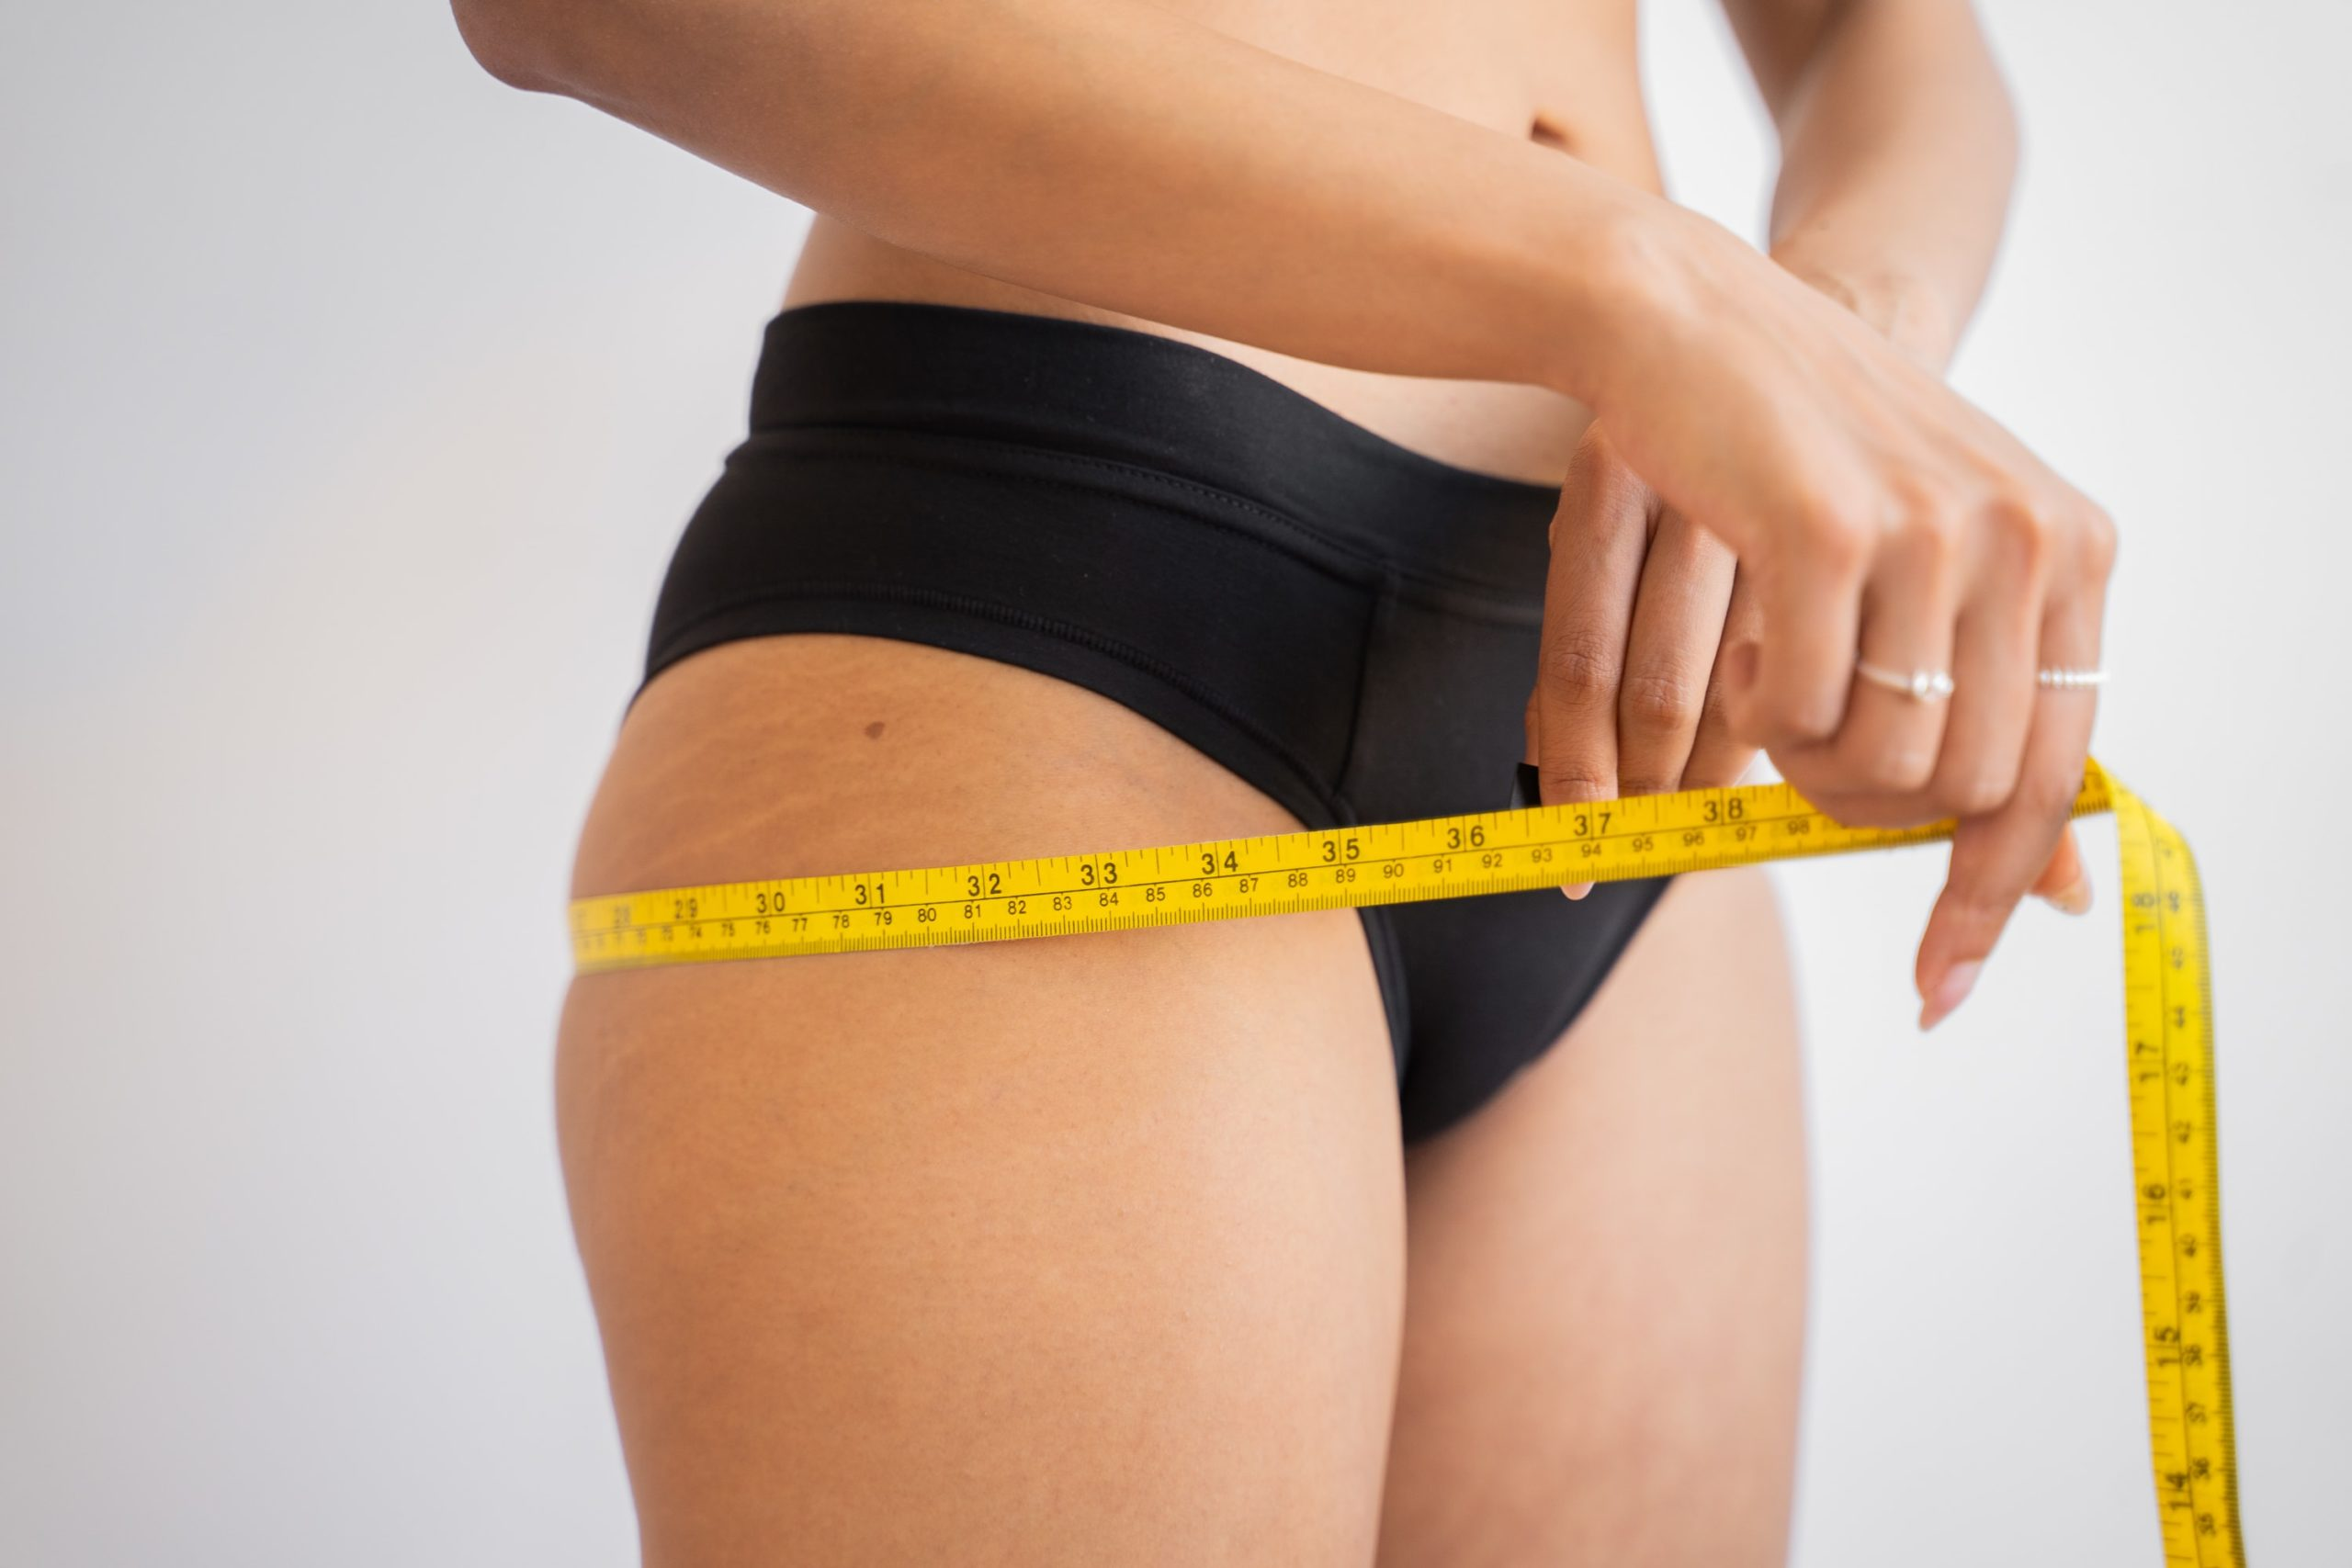 How to Lose Weight Without Dieting or Exercising? Here are 3 Step